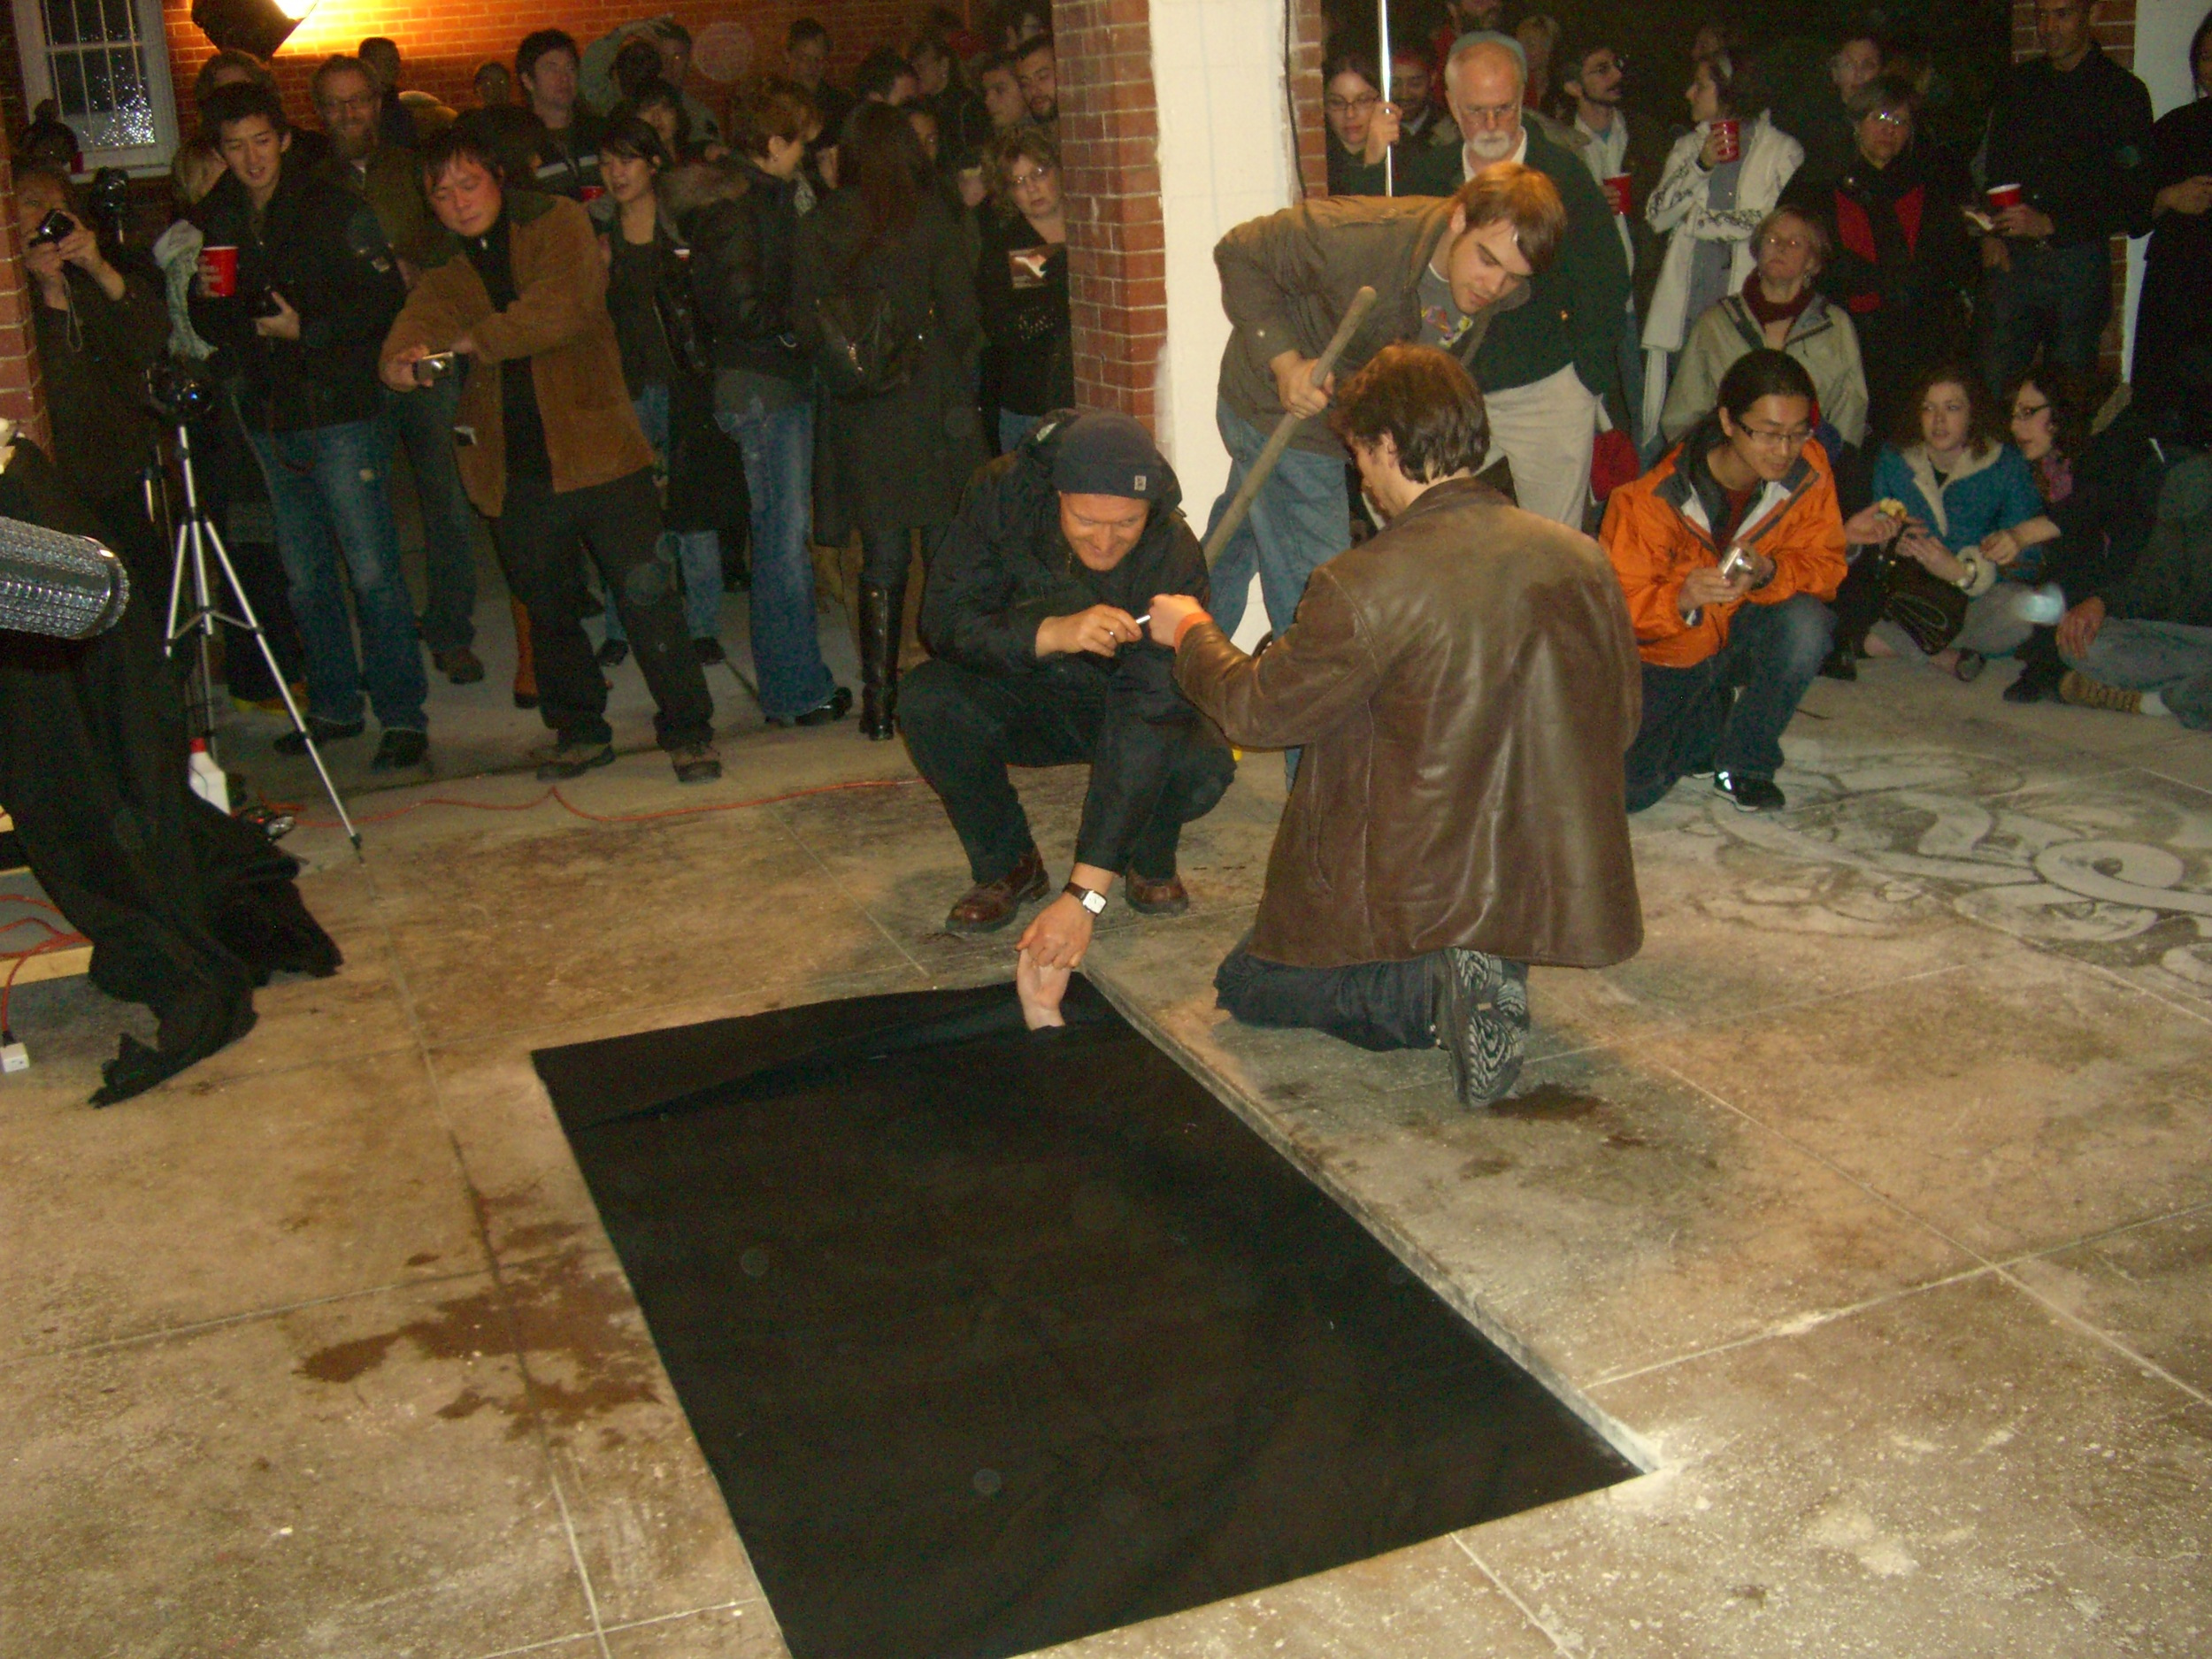 Calling A Stranger in the Hole by Scott Kildall for 100 Performances for the Hole, 2009